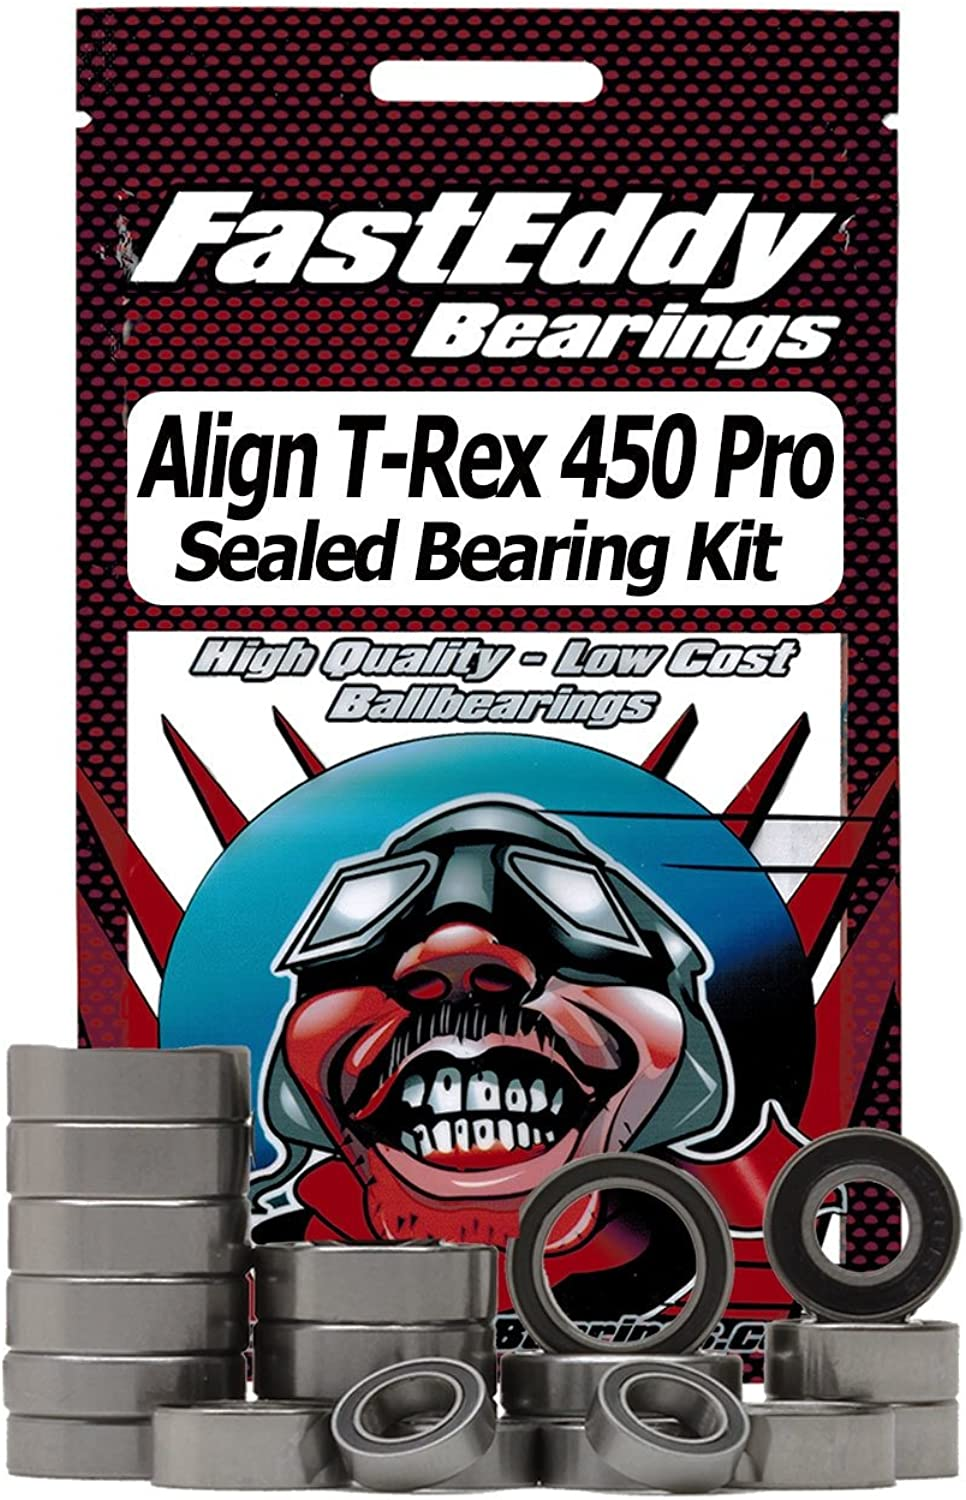 Align T-Rex 450 Pro Sealed Ball Bearing Kit for RC Cars